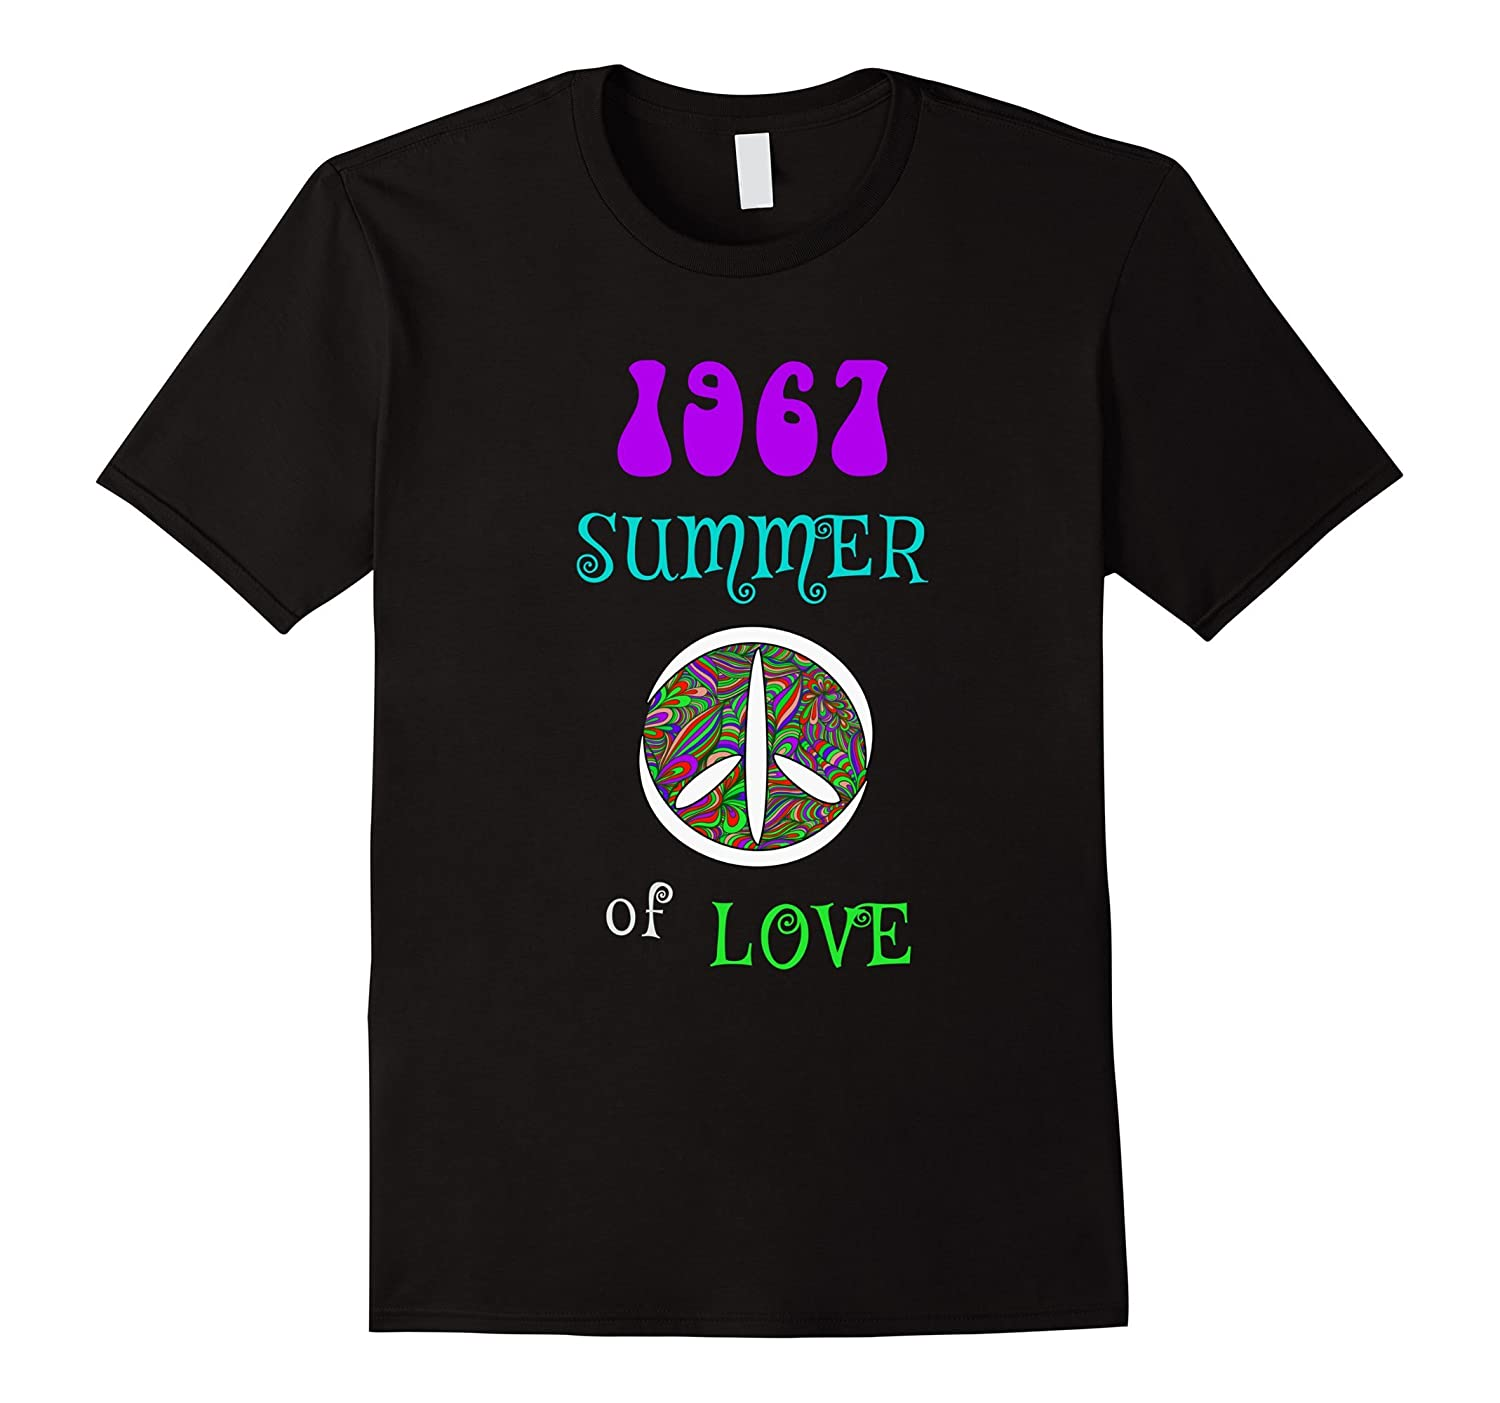 1967 Summer of Love Hippie Peace Sign T-shirt-TH